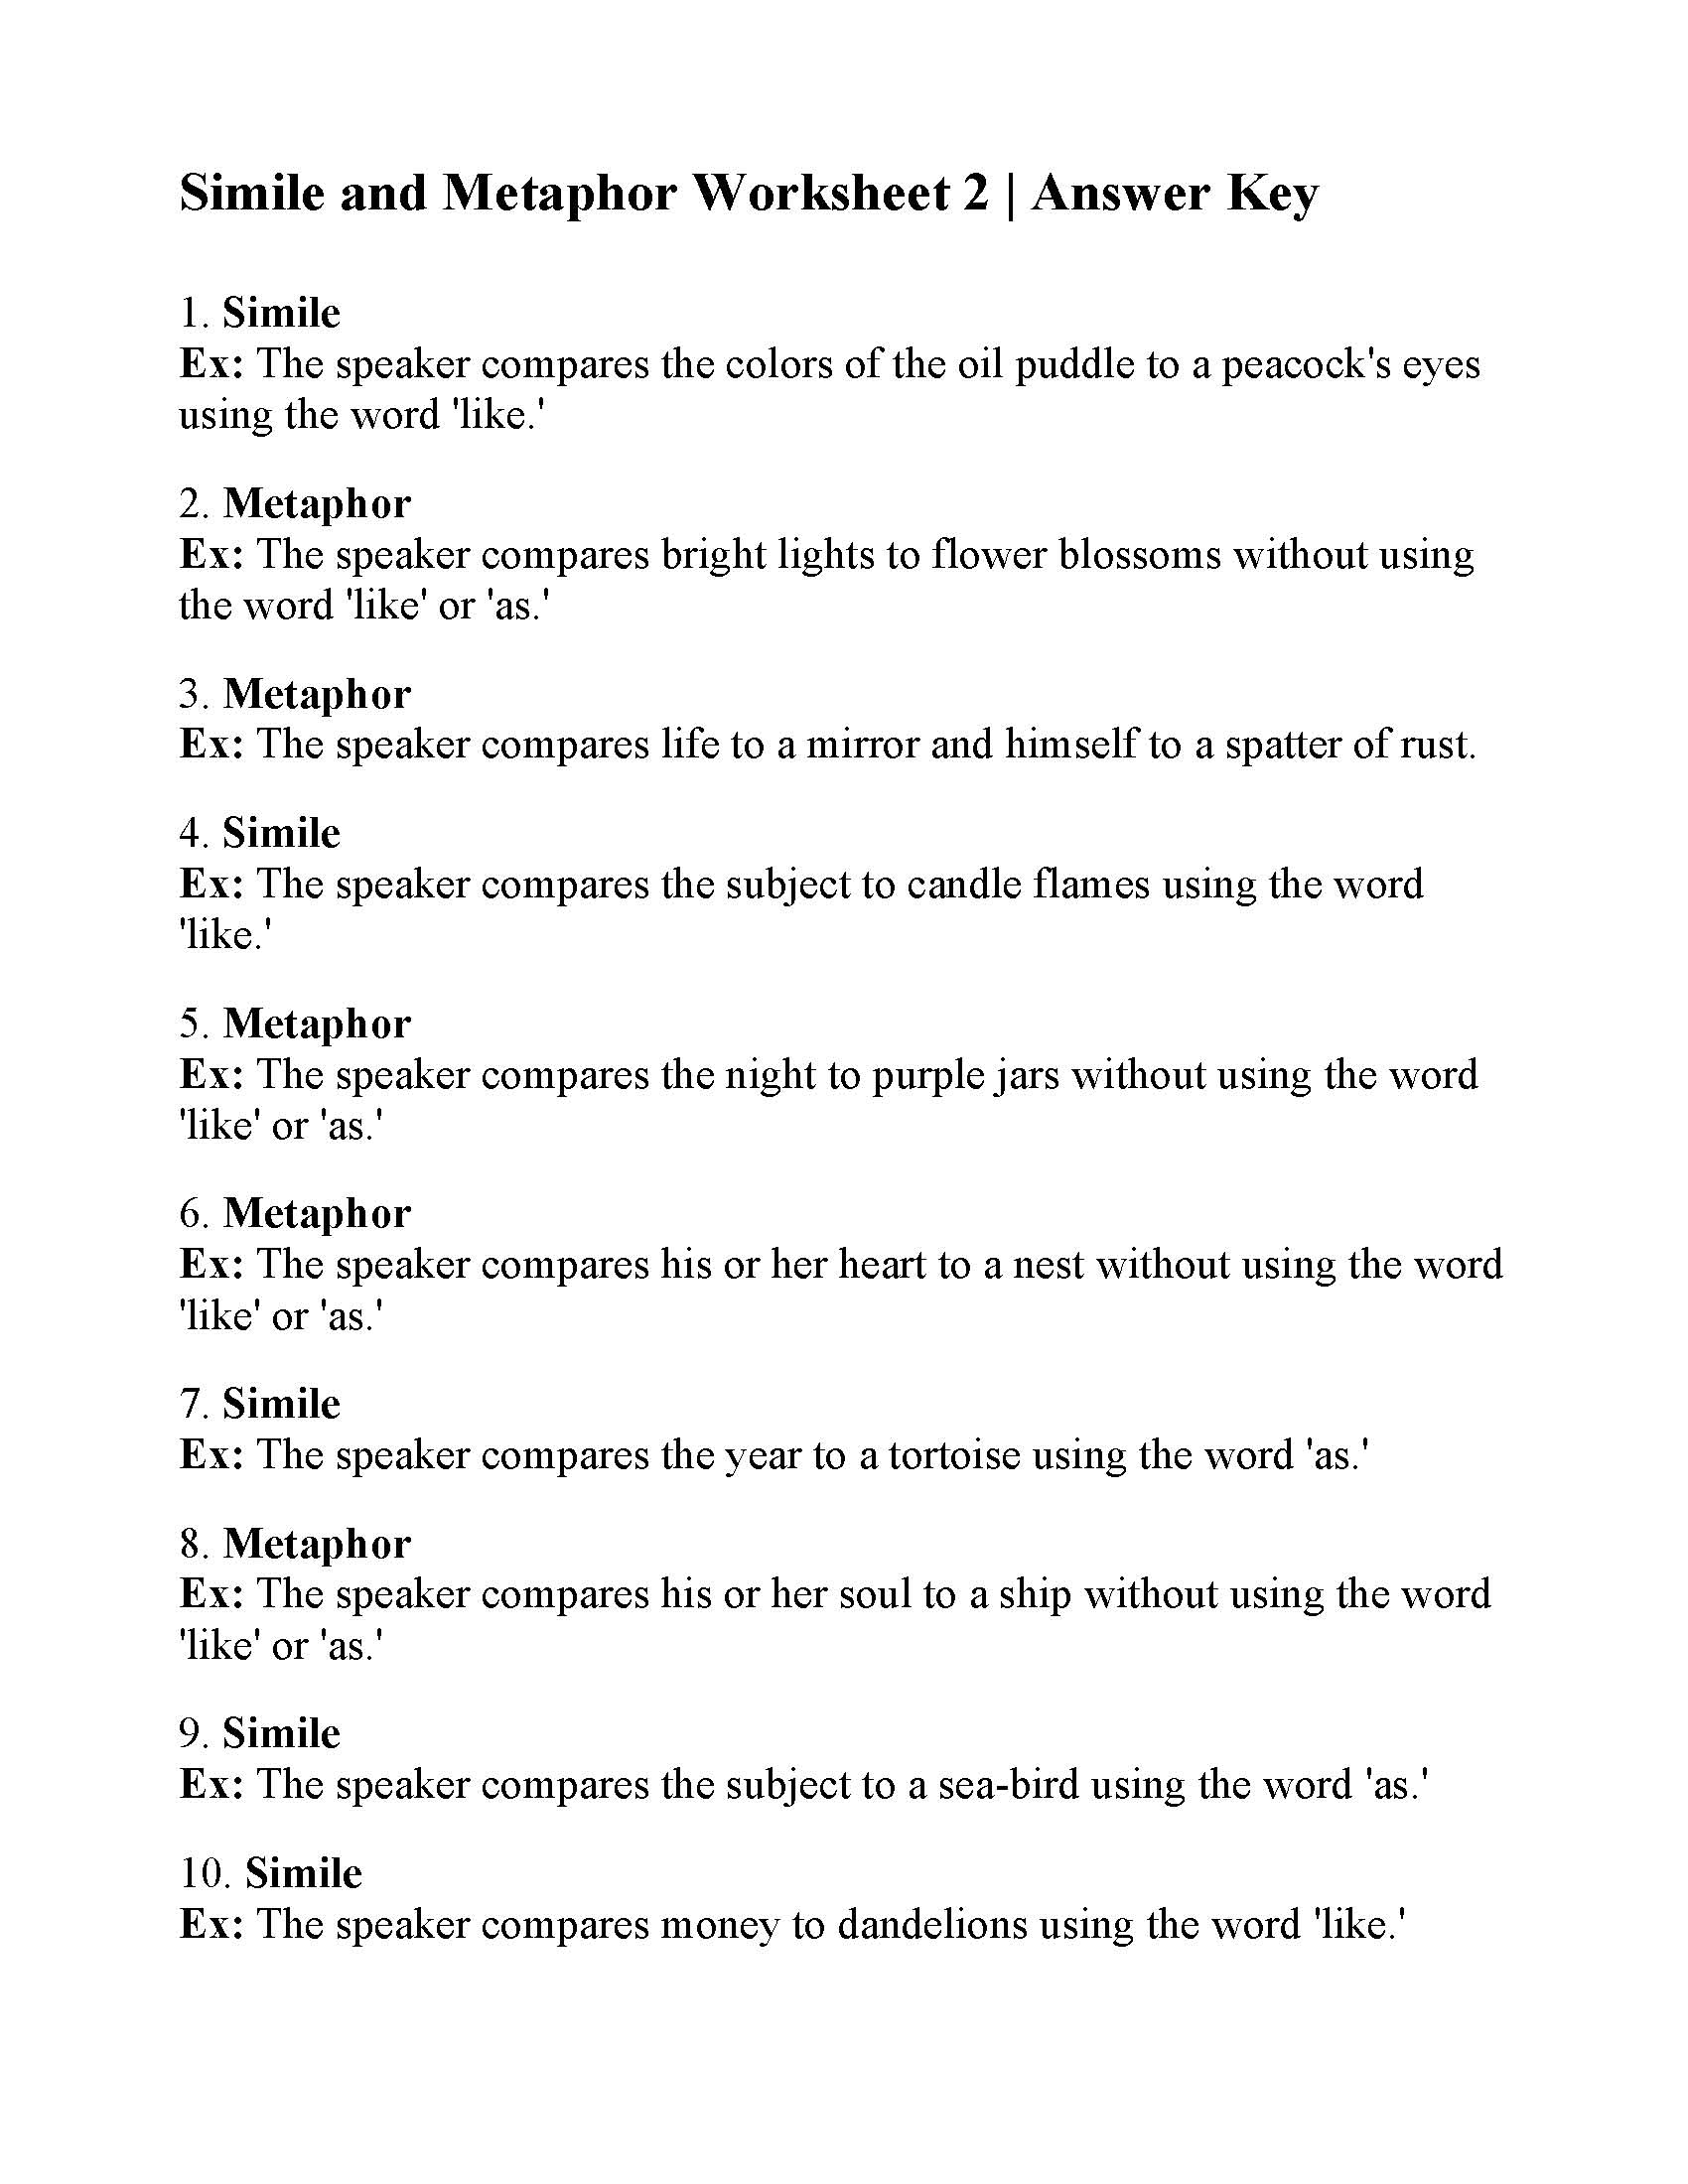 Simile and Metaphor Worksheet 2 | Answers